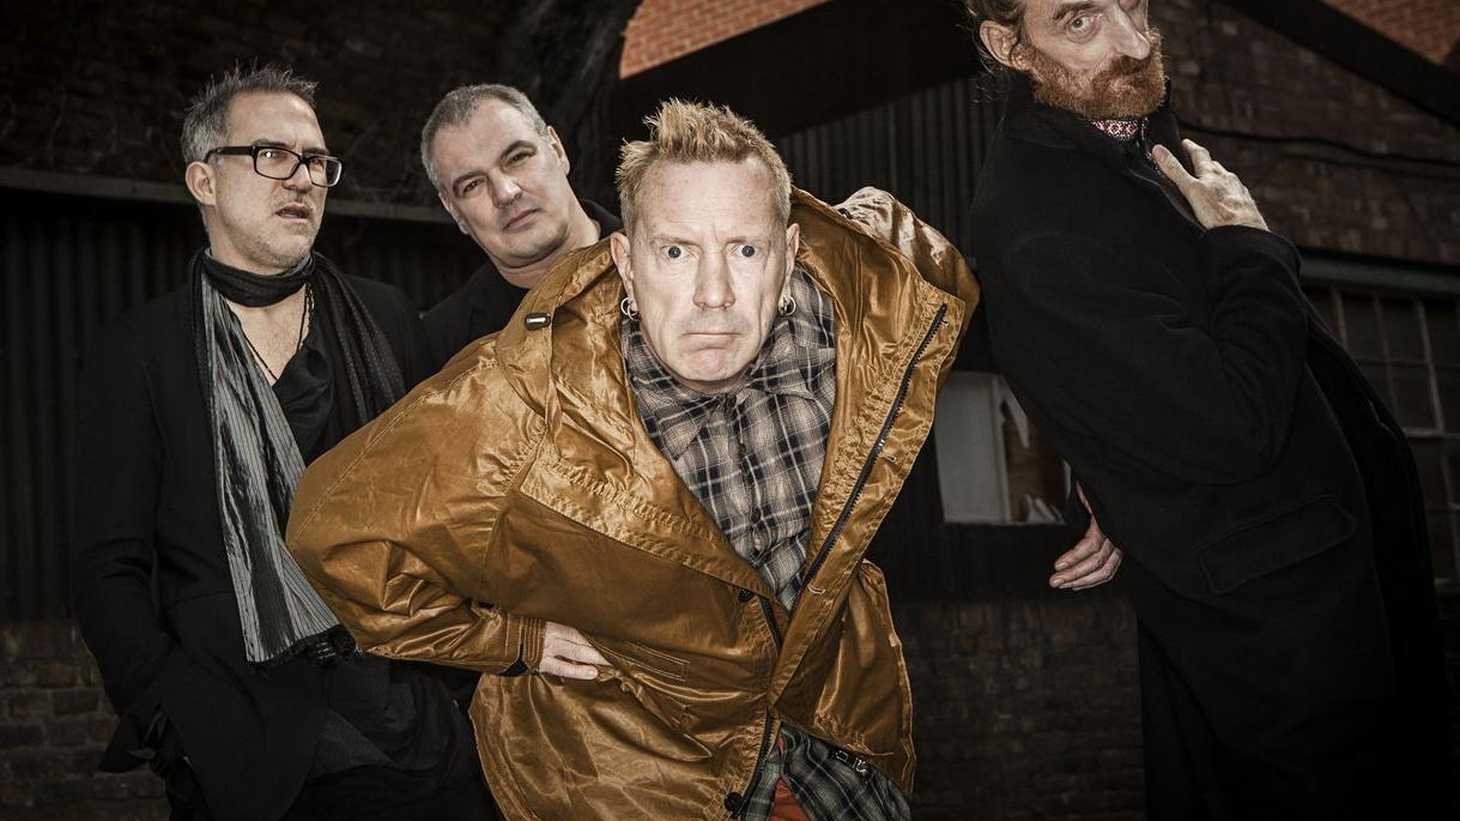 After a 20-year hiatus, Public Image Limited is back with a new album featuring iconic singer John Lydon at the helm.